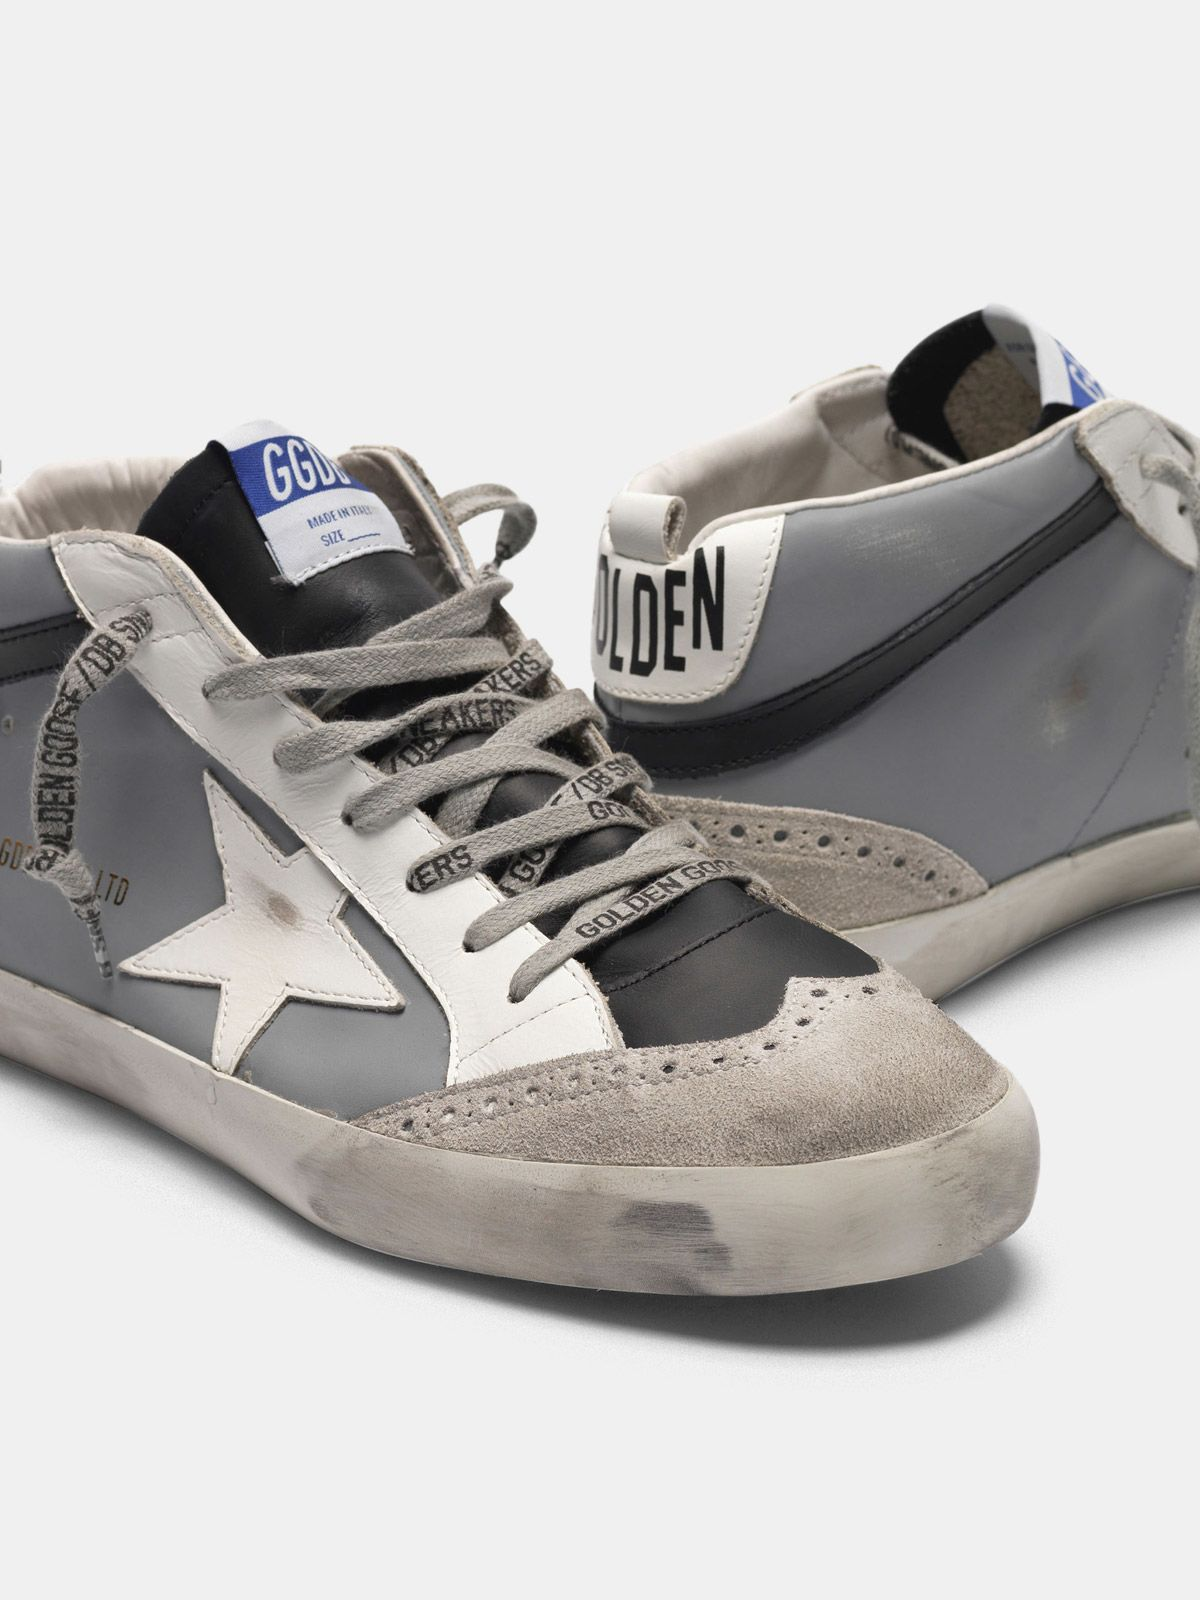 Golden Goose - Mid Star sneakers in leather with suede toecap in